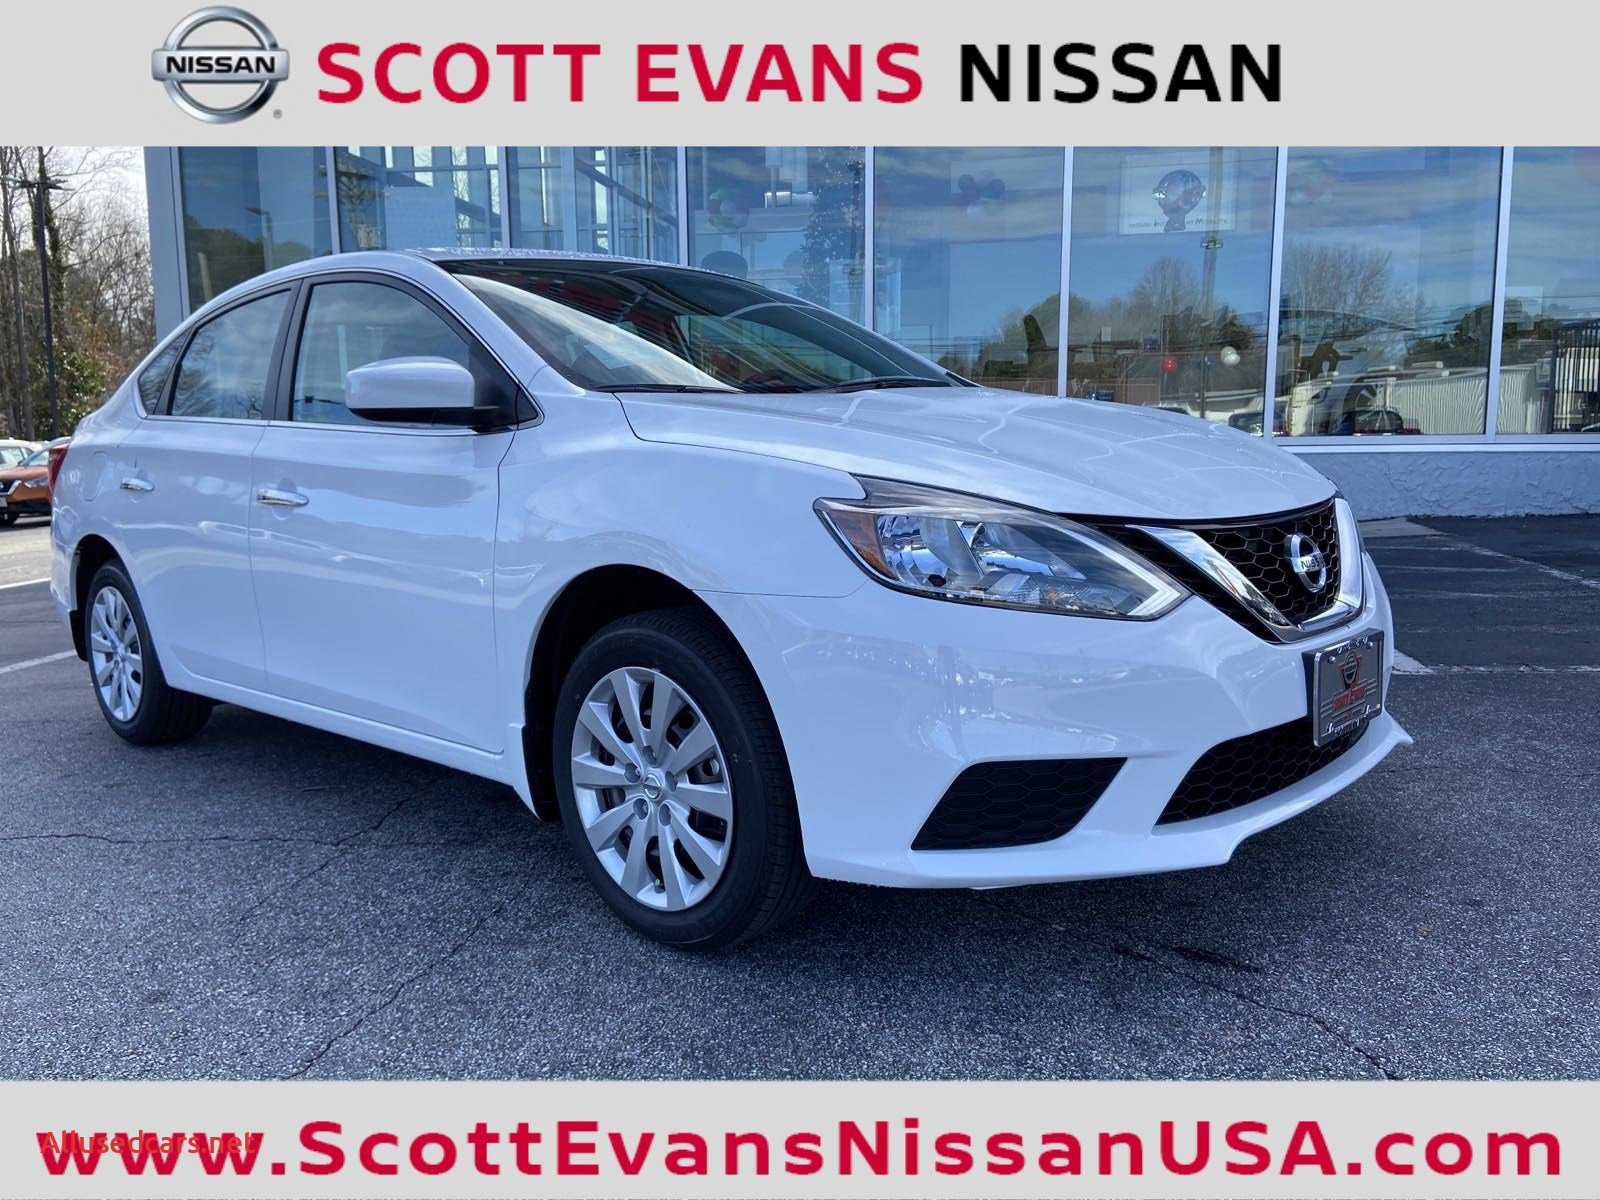 Nissan Sentra for Sale Luxury New 2019 Nissan Sentra S Fwd 4dr Car